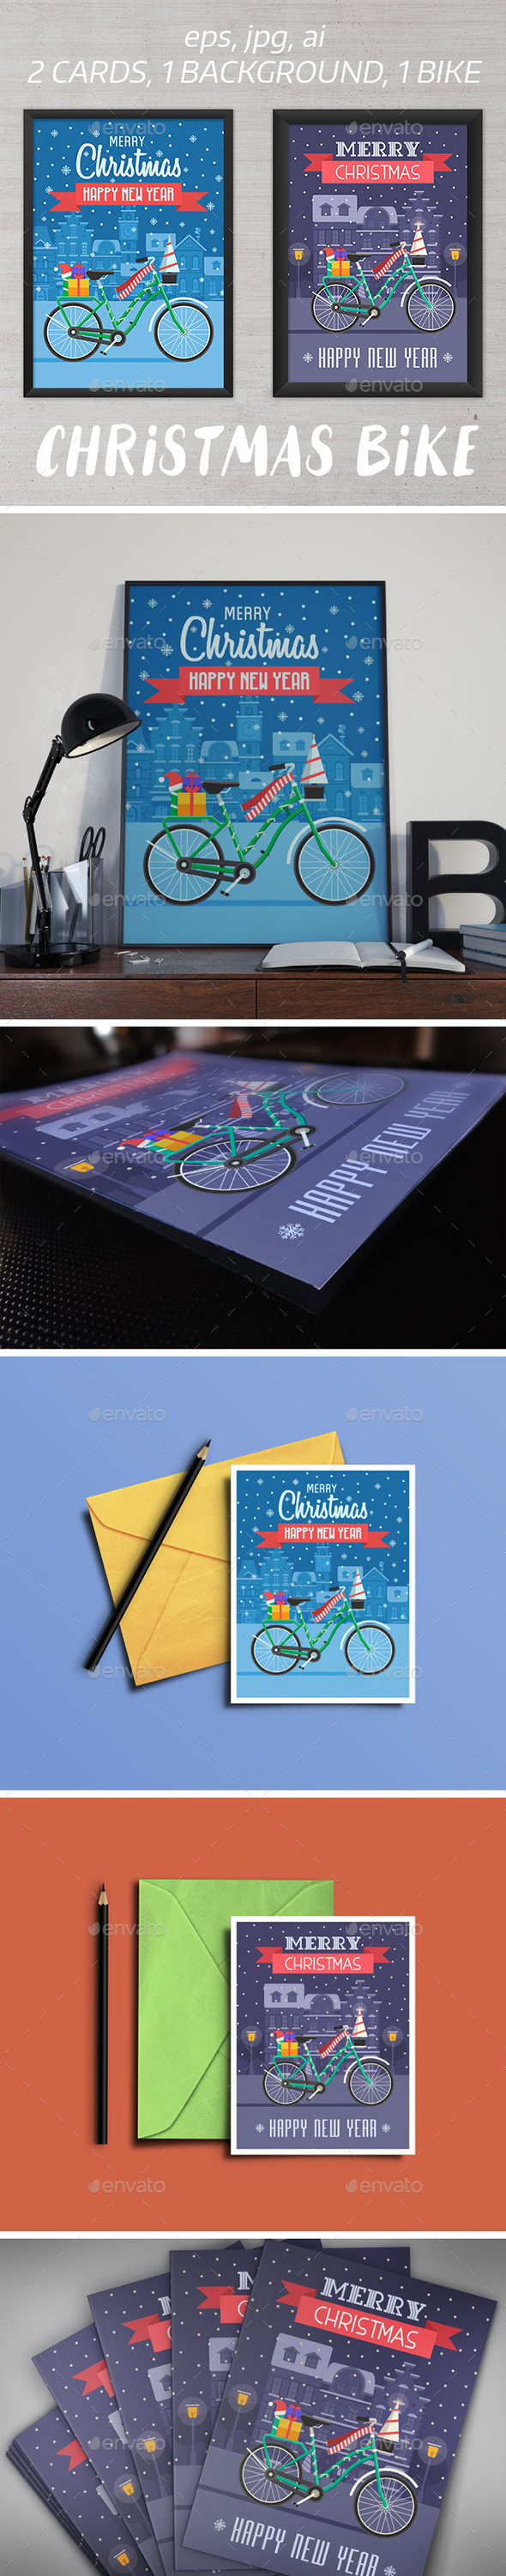 Christmas Bike Greetings Cards